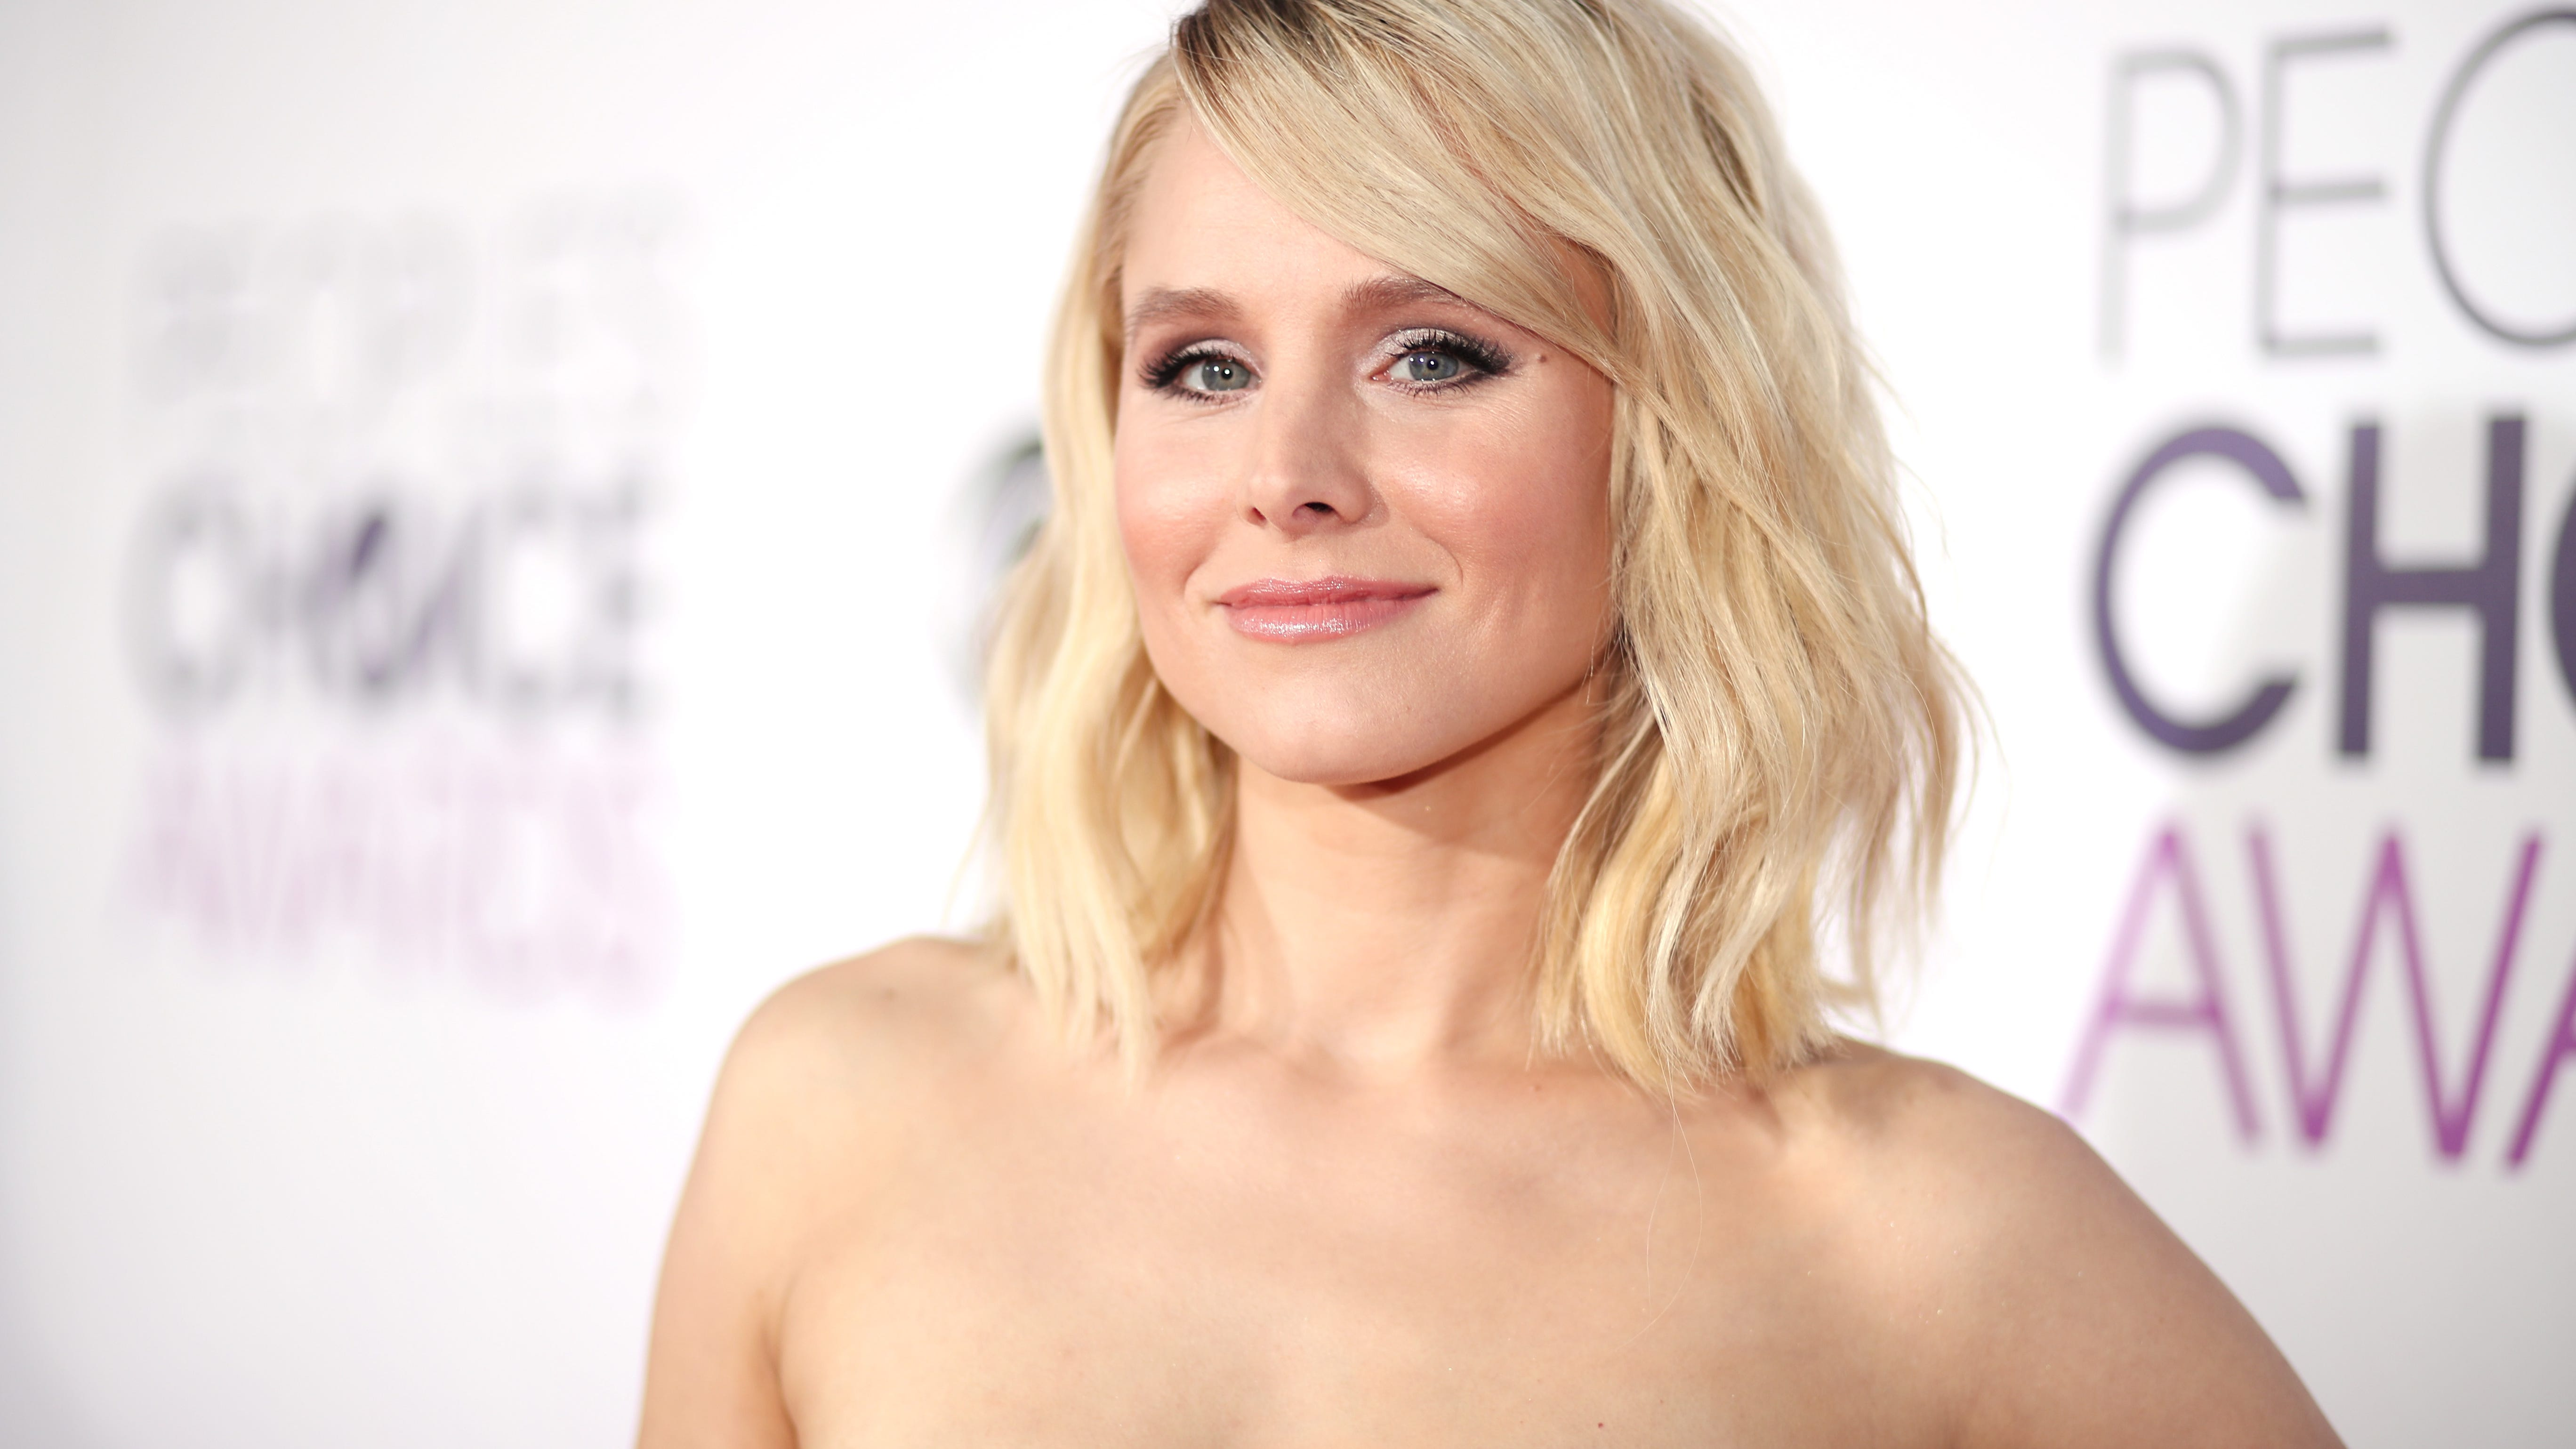 Kristen Bell opens up about mental health and the times she feels 'very vulnerable'